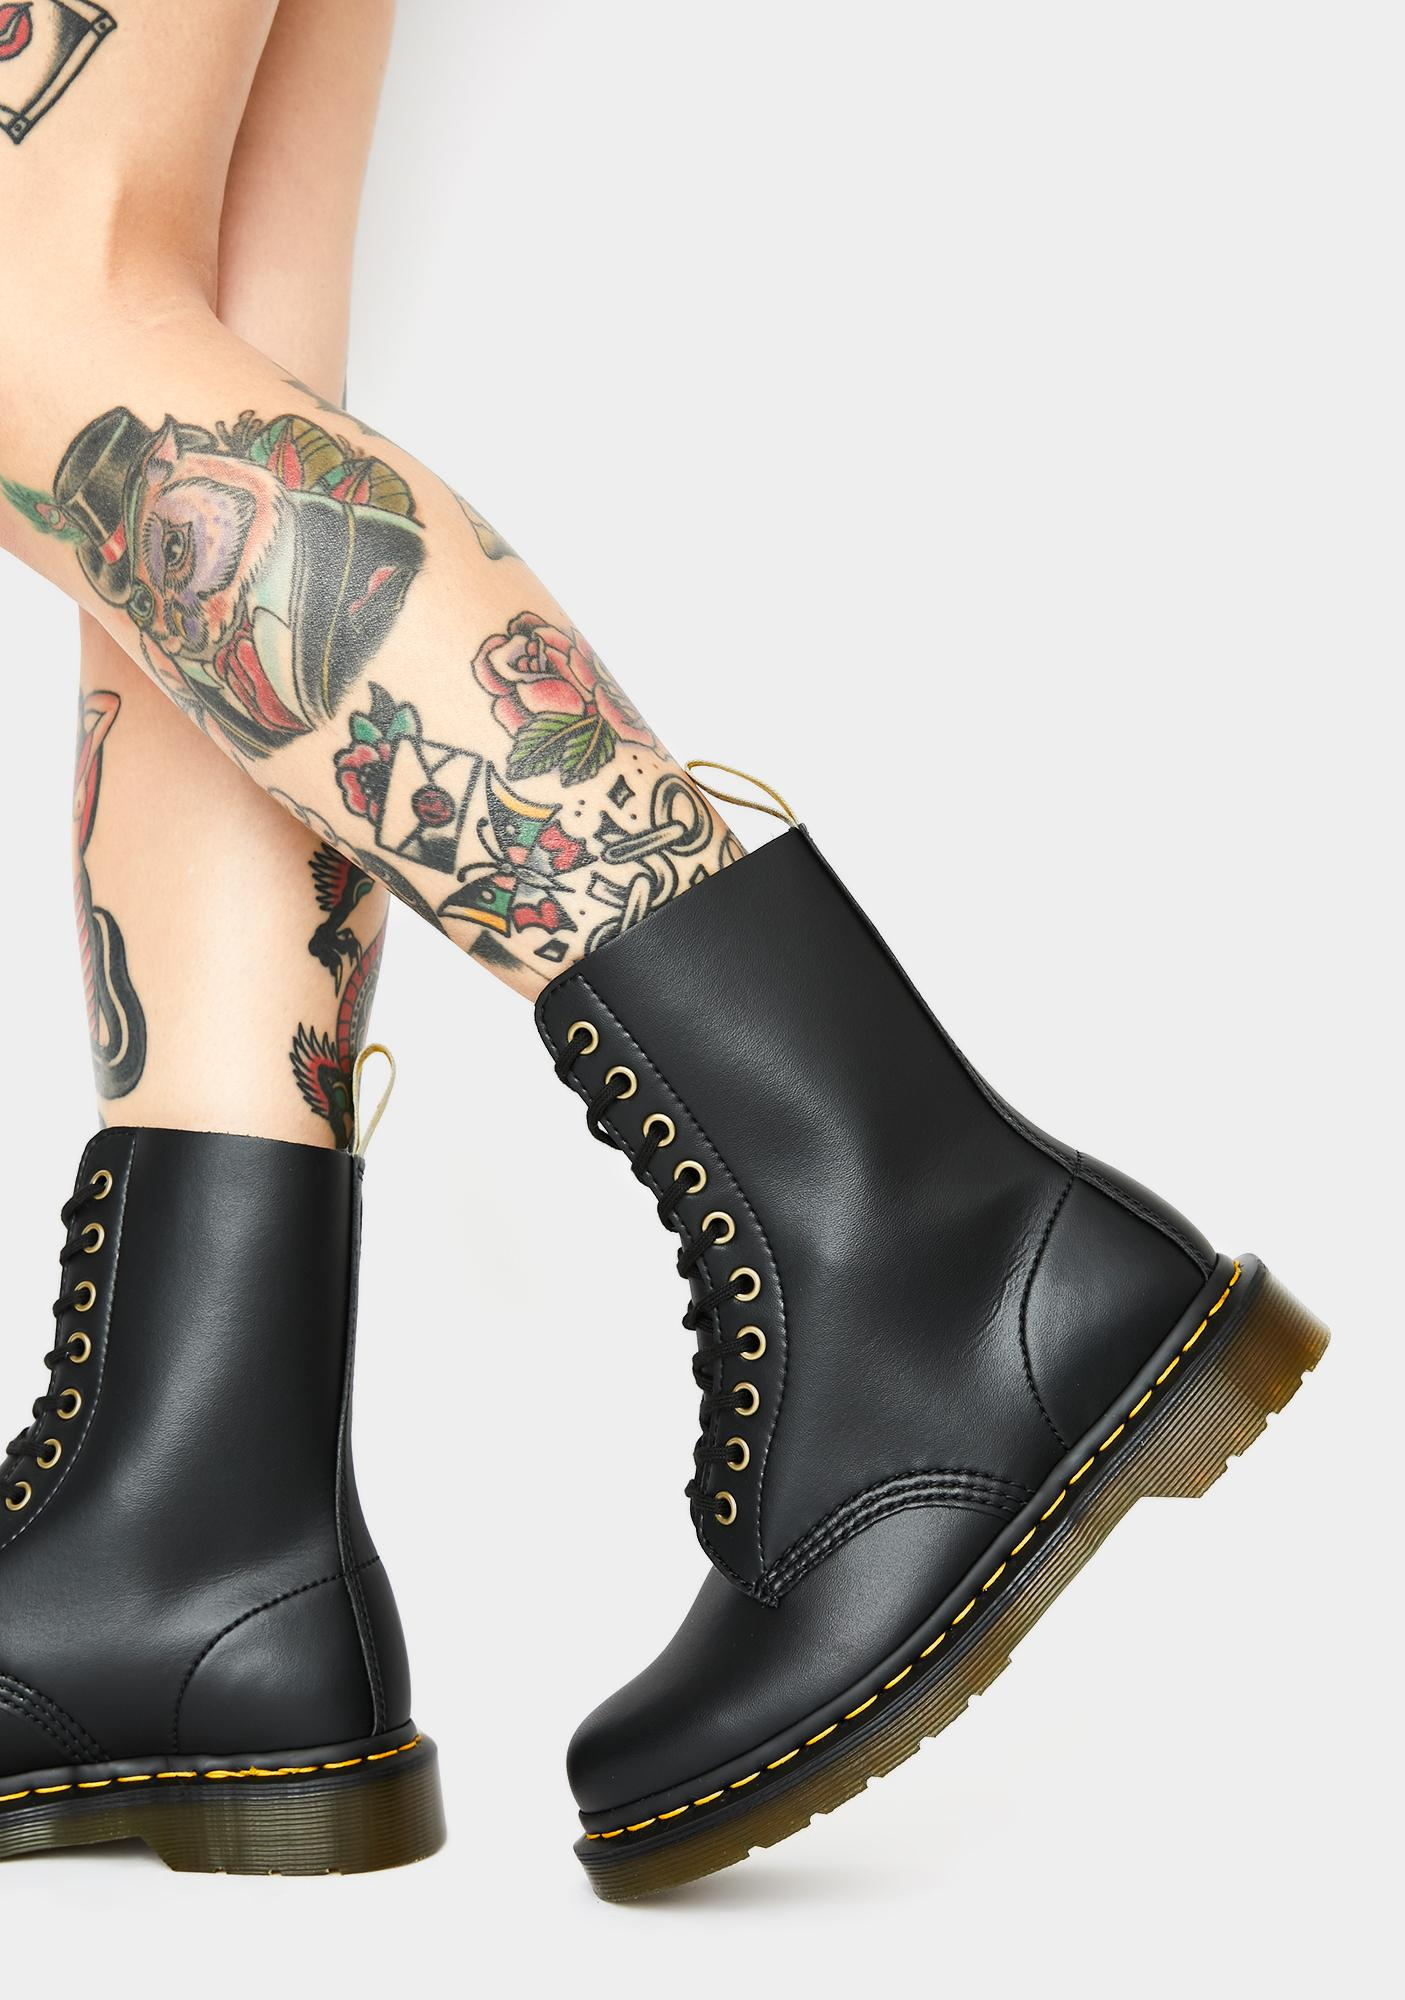 Dr. Martens 1490 10 Eye Boot in Leopard Print (want